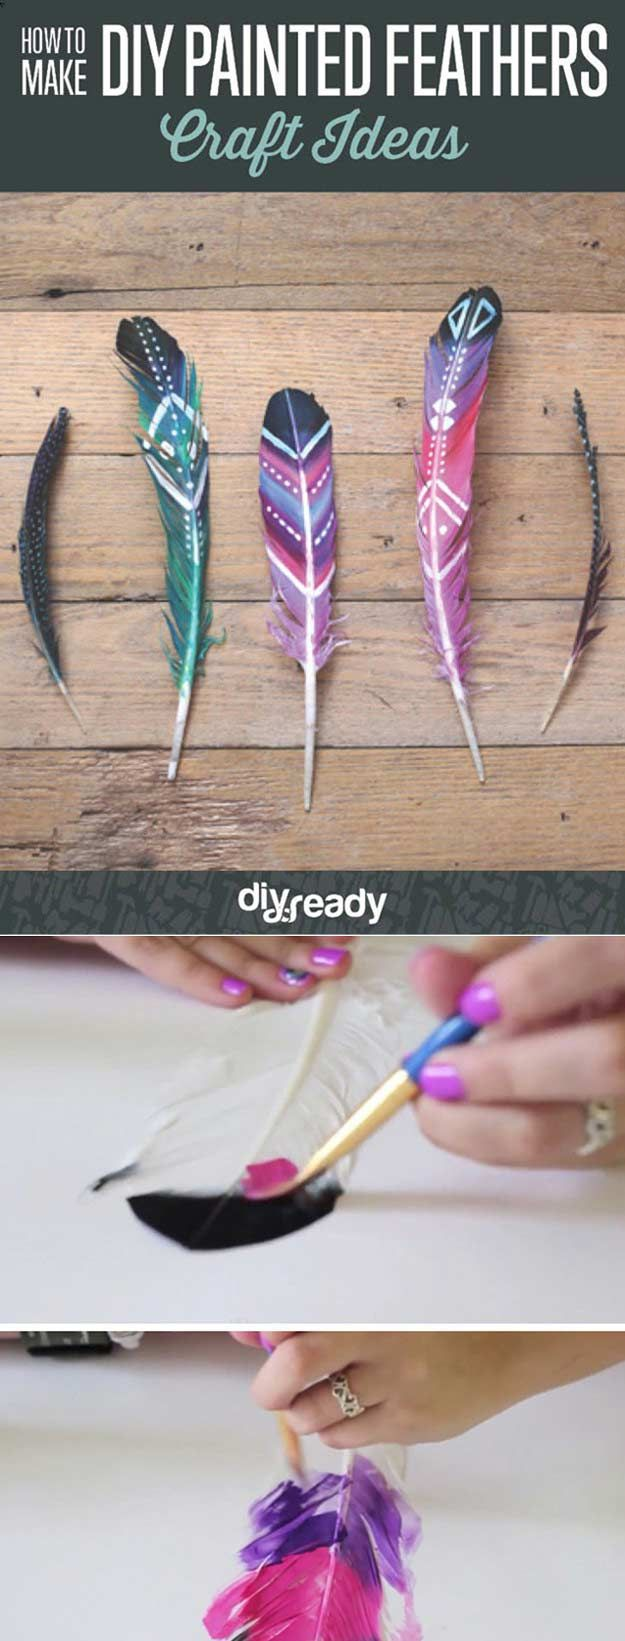 DIY Painted Feathers | 19 Cool DIY Photo Booth Props | How To Make Fun and Creative Photo Booth's For Birthday, Graduation, Wedding, Baby Shower,  Summer Parties and more! http://diyready.com/19-cool-diy-photo-booth-props/